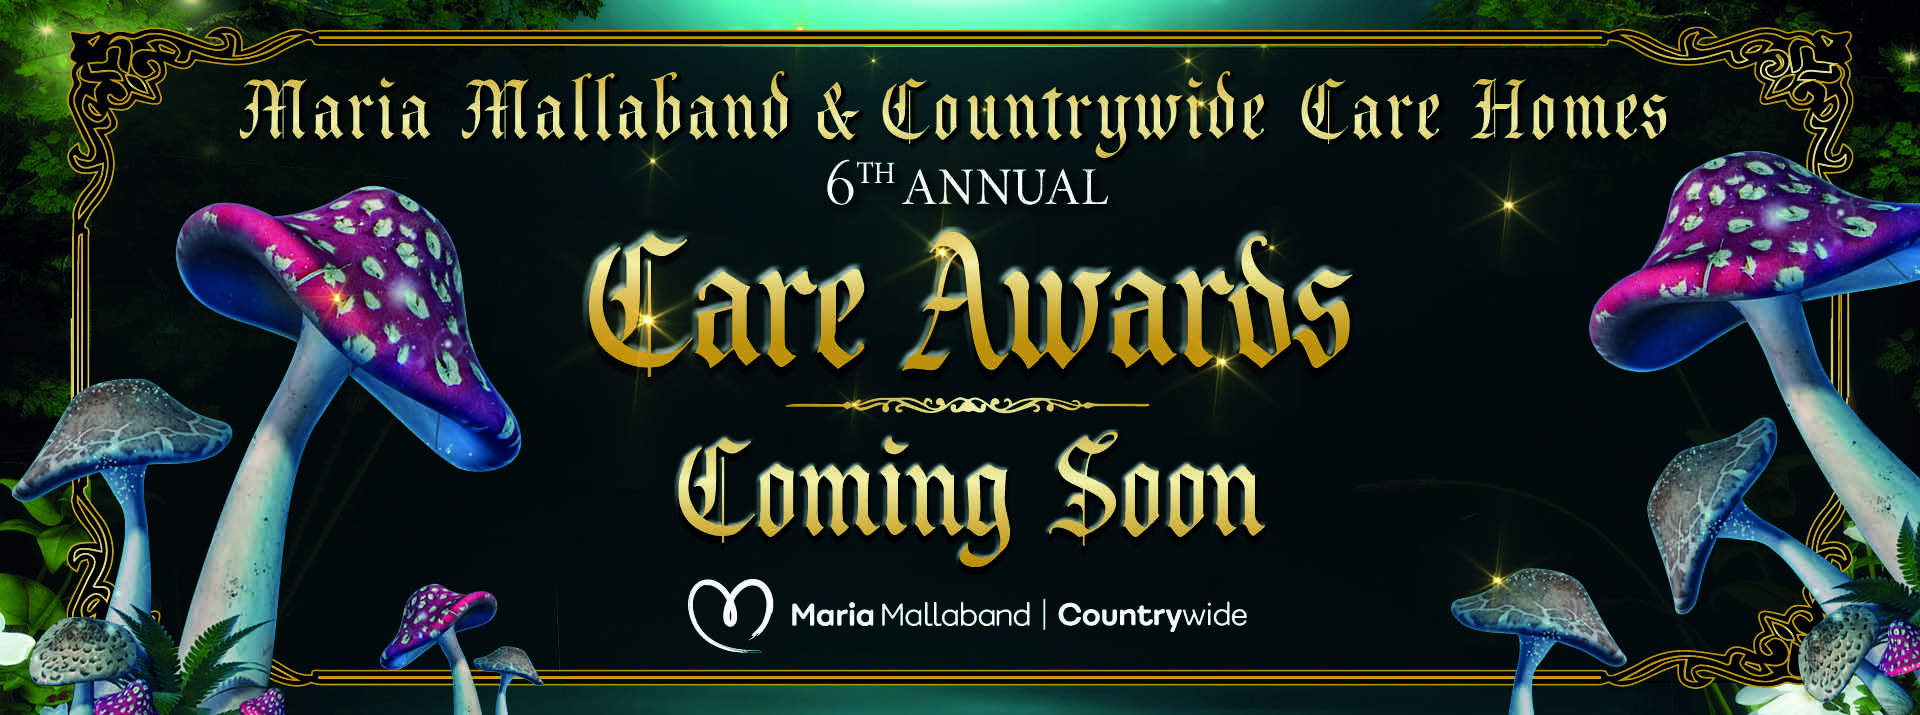 Care awards coming soon